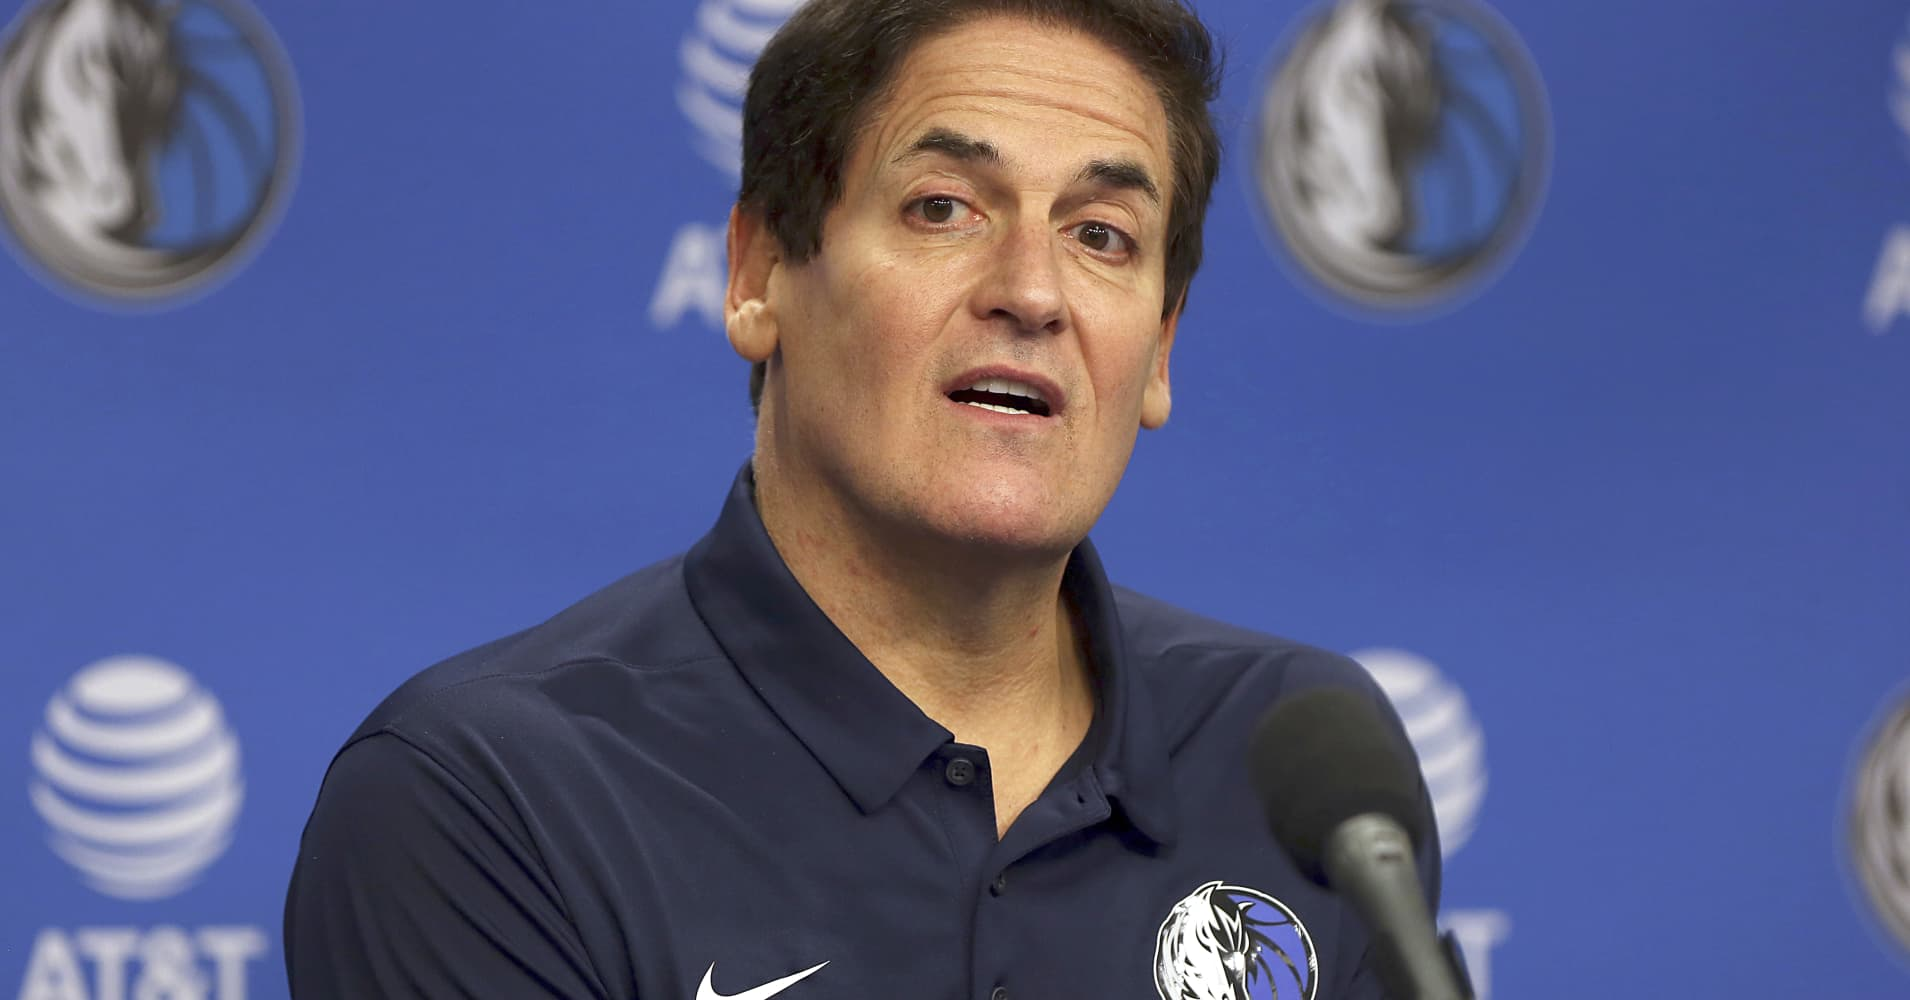 DALLAS, TEXAS - FEBRUARY 26: Team owner Mark Cuban looks on during a press conference to introduce Cynthia Marshall as the new Dallas Mavericks Interim CEO at American Airlines Center on February 26, 2018 in Dallas, Texas.